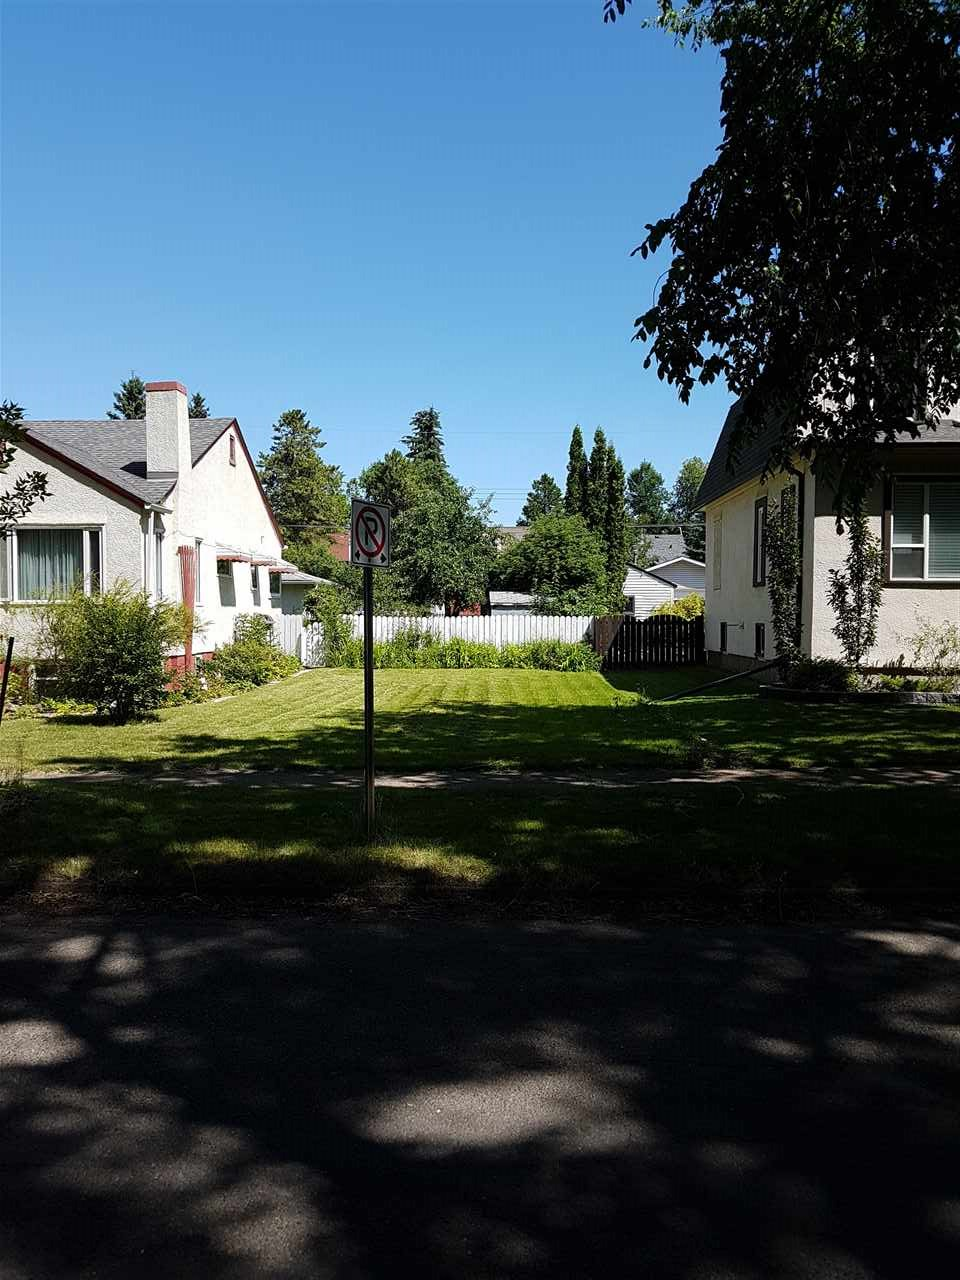 Build your dream home on this newly subdivided 7.82m (25.67') x 37.46m (122.9') lot. Beautiful tree lined street with very quick access to the downtown and Wayne Gretzky Drive. River valley a quick walk. Close to all amenities. Have a Builder that will build to suit. Very nice neighbourhood!!